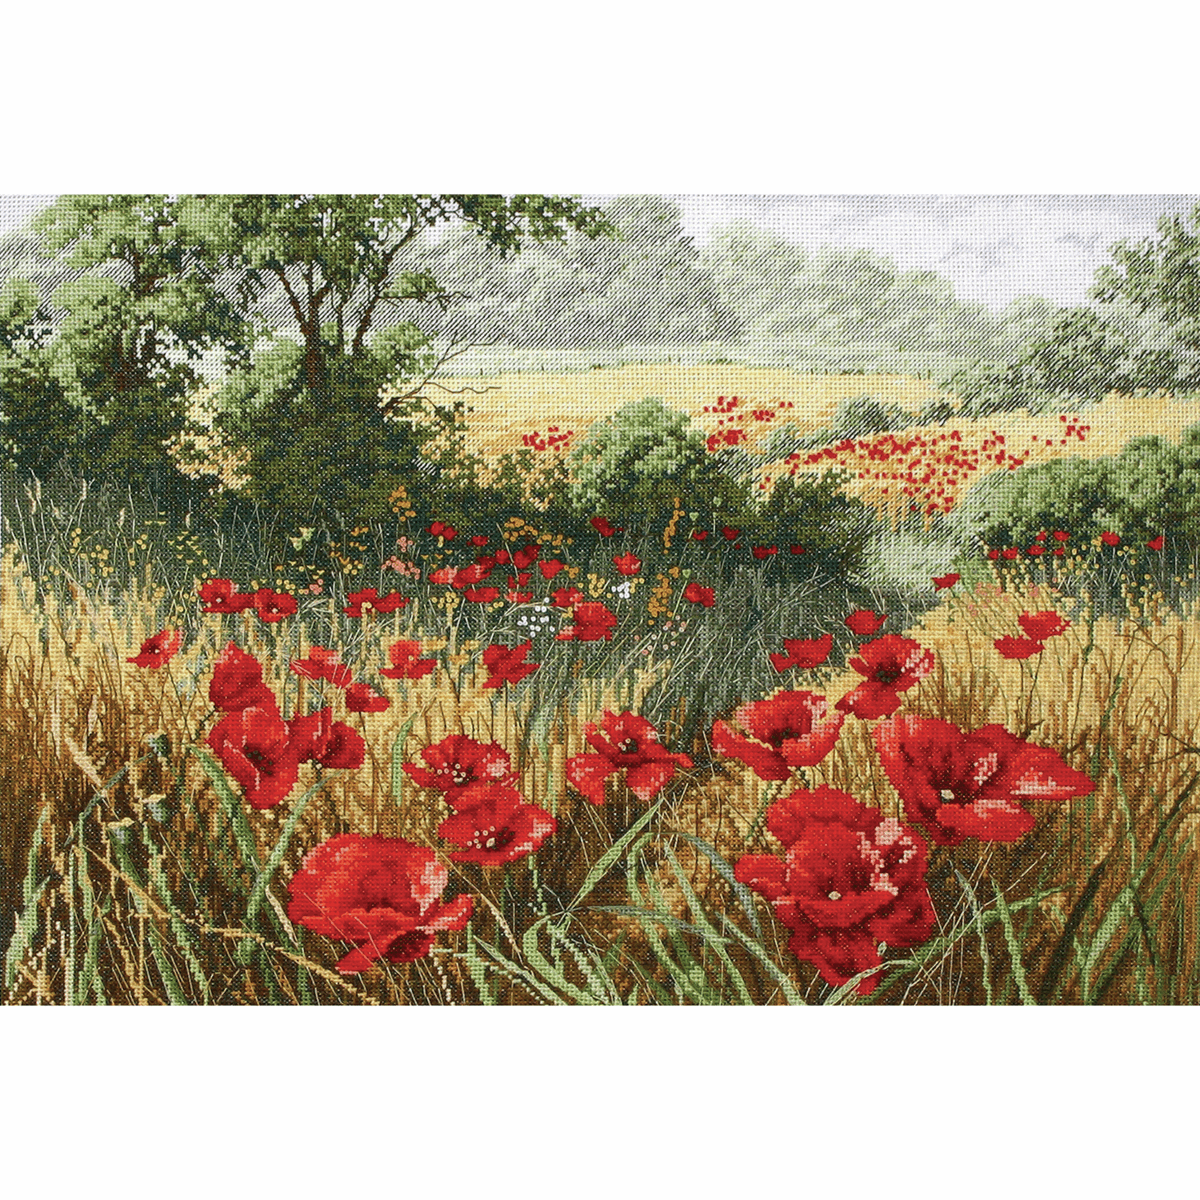 Picture of Counted Cross Stitch Kit: Maia: Host of Poppies